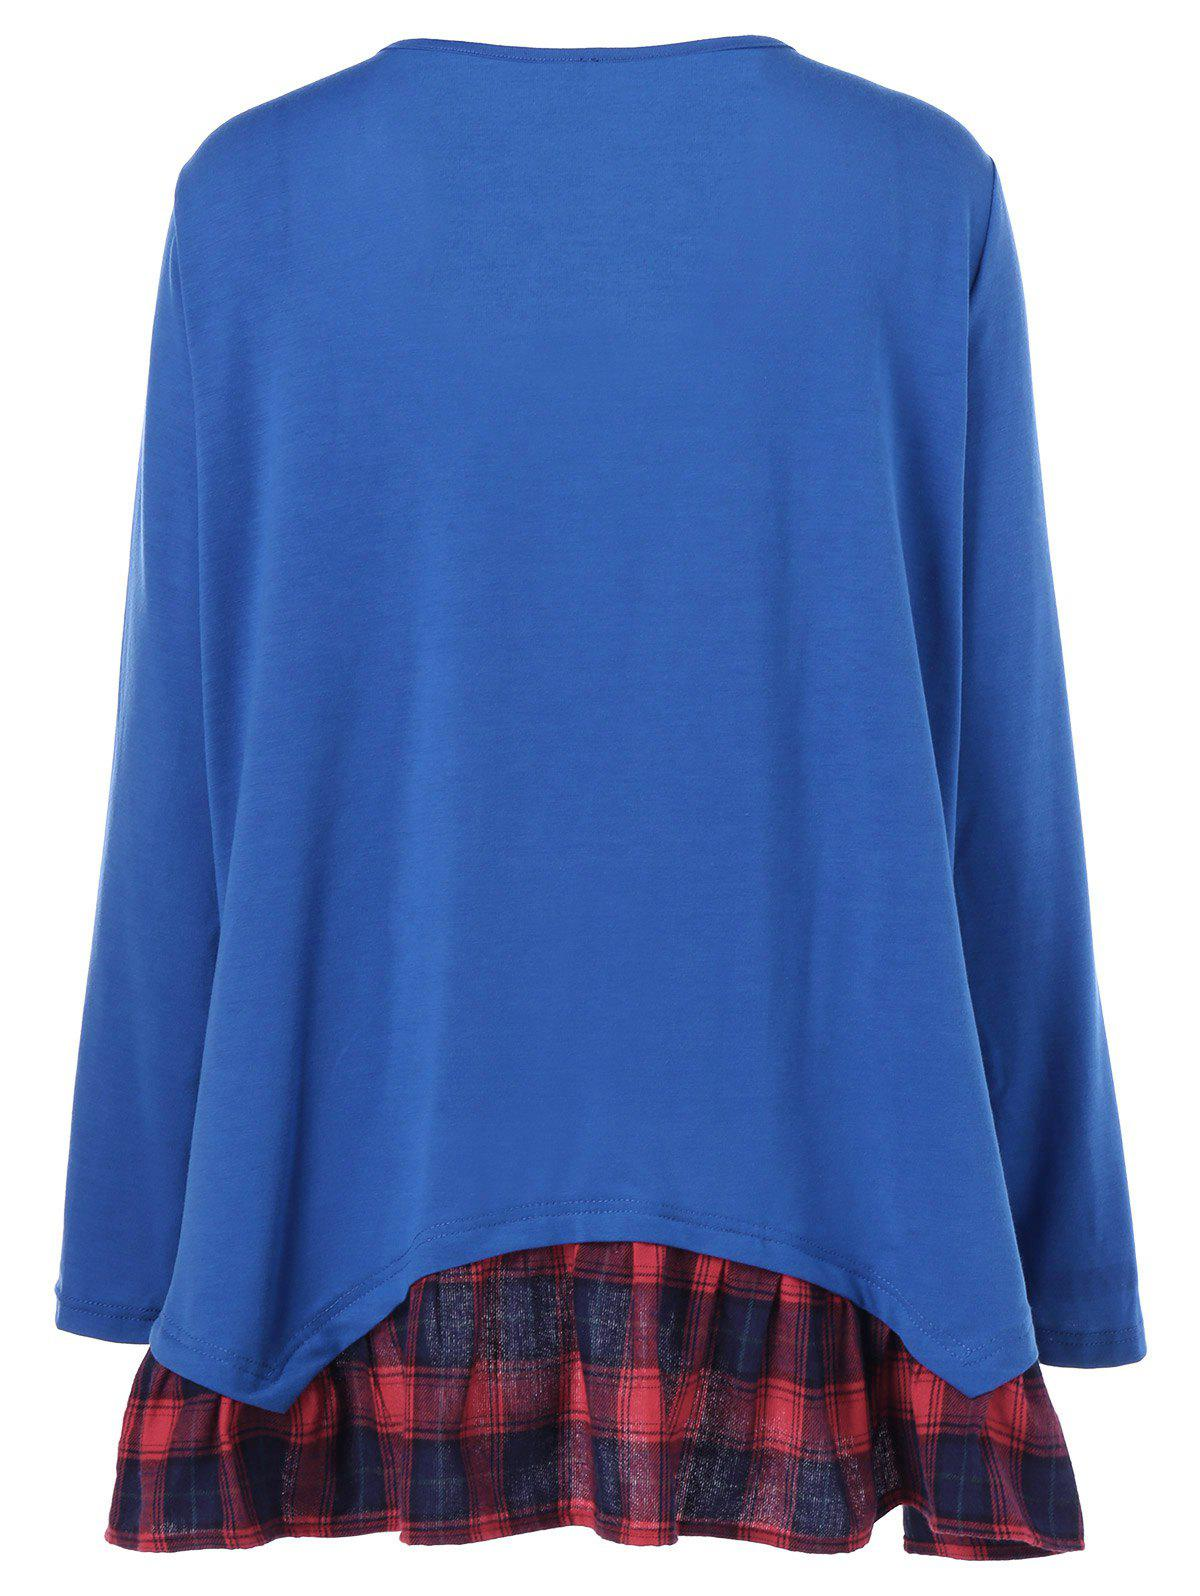 Plus Size Plaid Flounced T-Shirt - BLUE XL